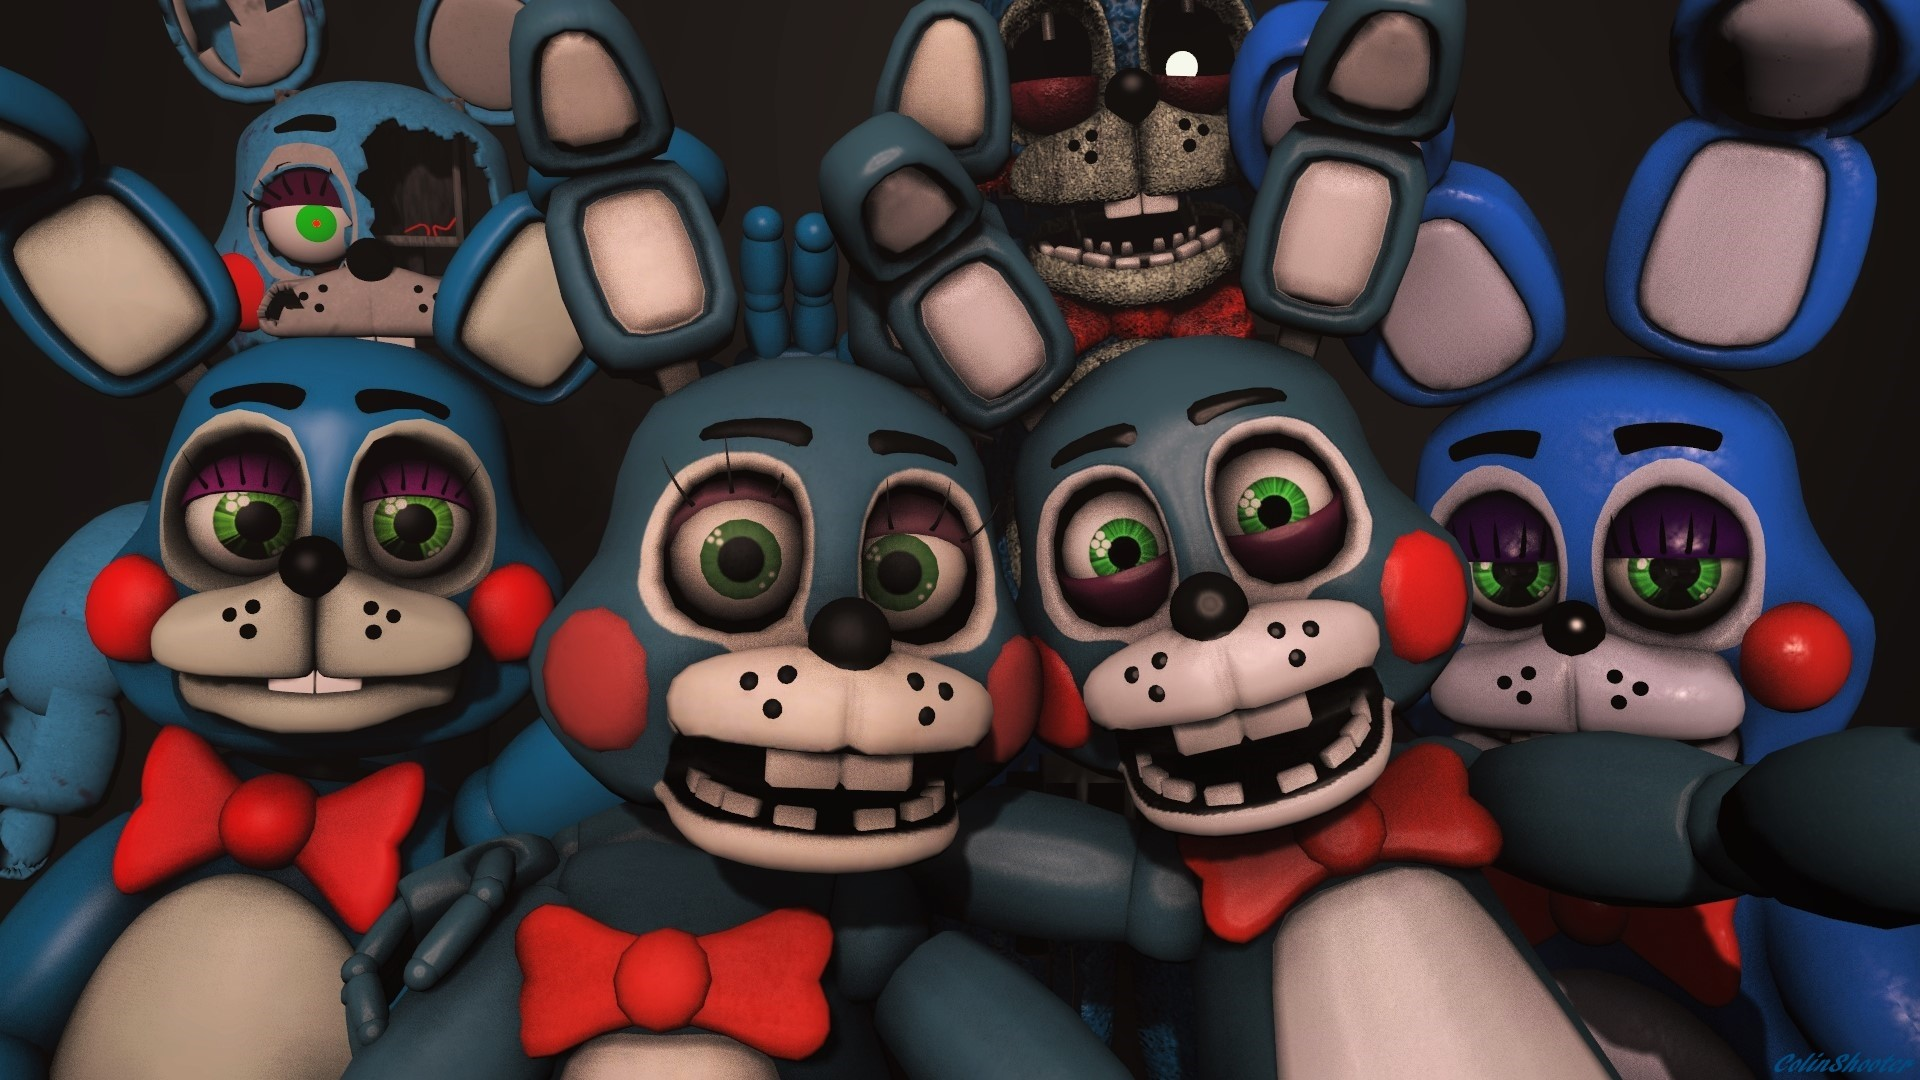 1920x1080 ... The Many faces of Toy Bonnie by ColinShooter